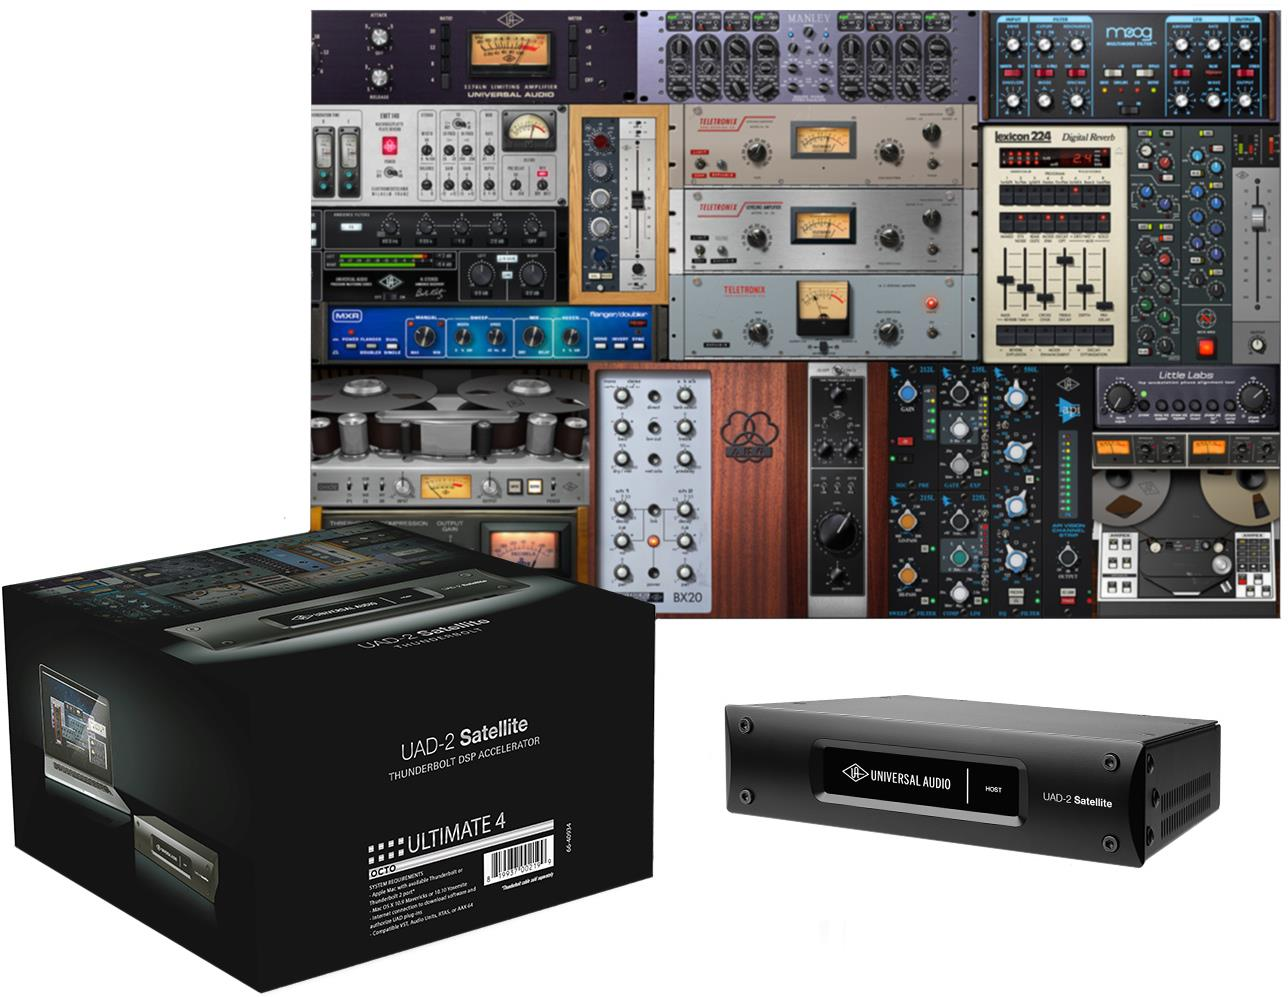 Universal audio uad 2 satellite thunderbolt octo ultimate 4 keymusic universal audio uad 2 satellite thunderbolt octo ultimate 4 thunderbolt audio interface stopboris Image collections